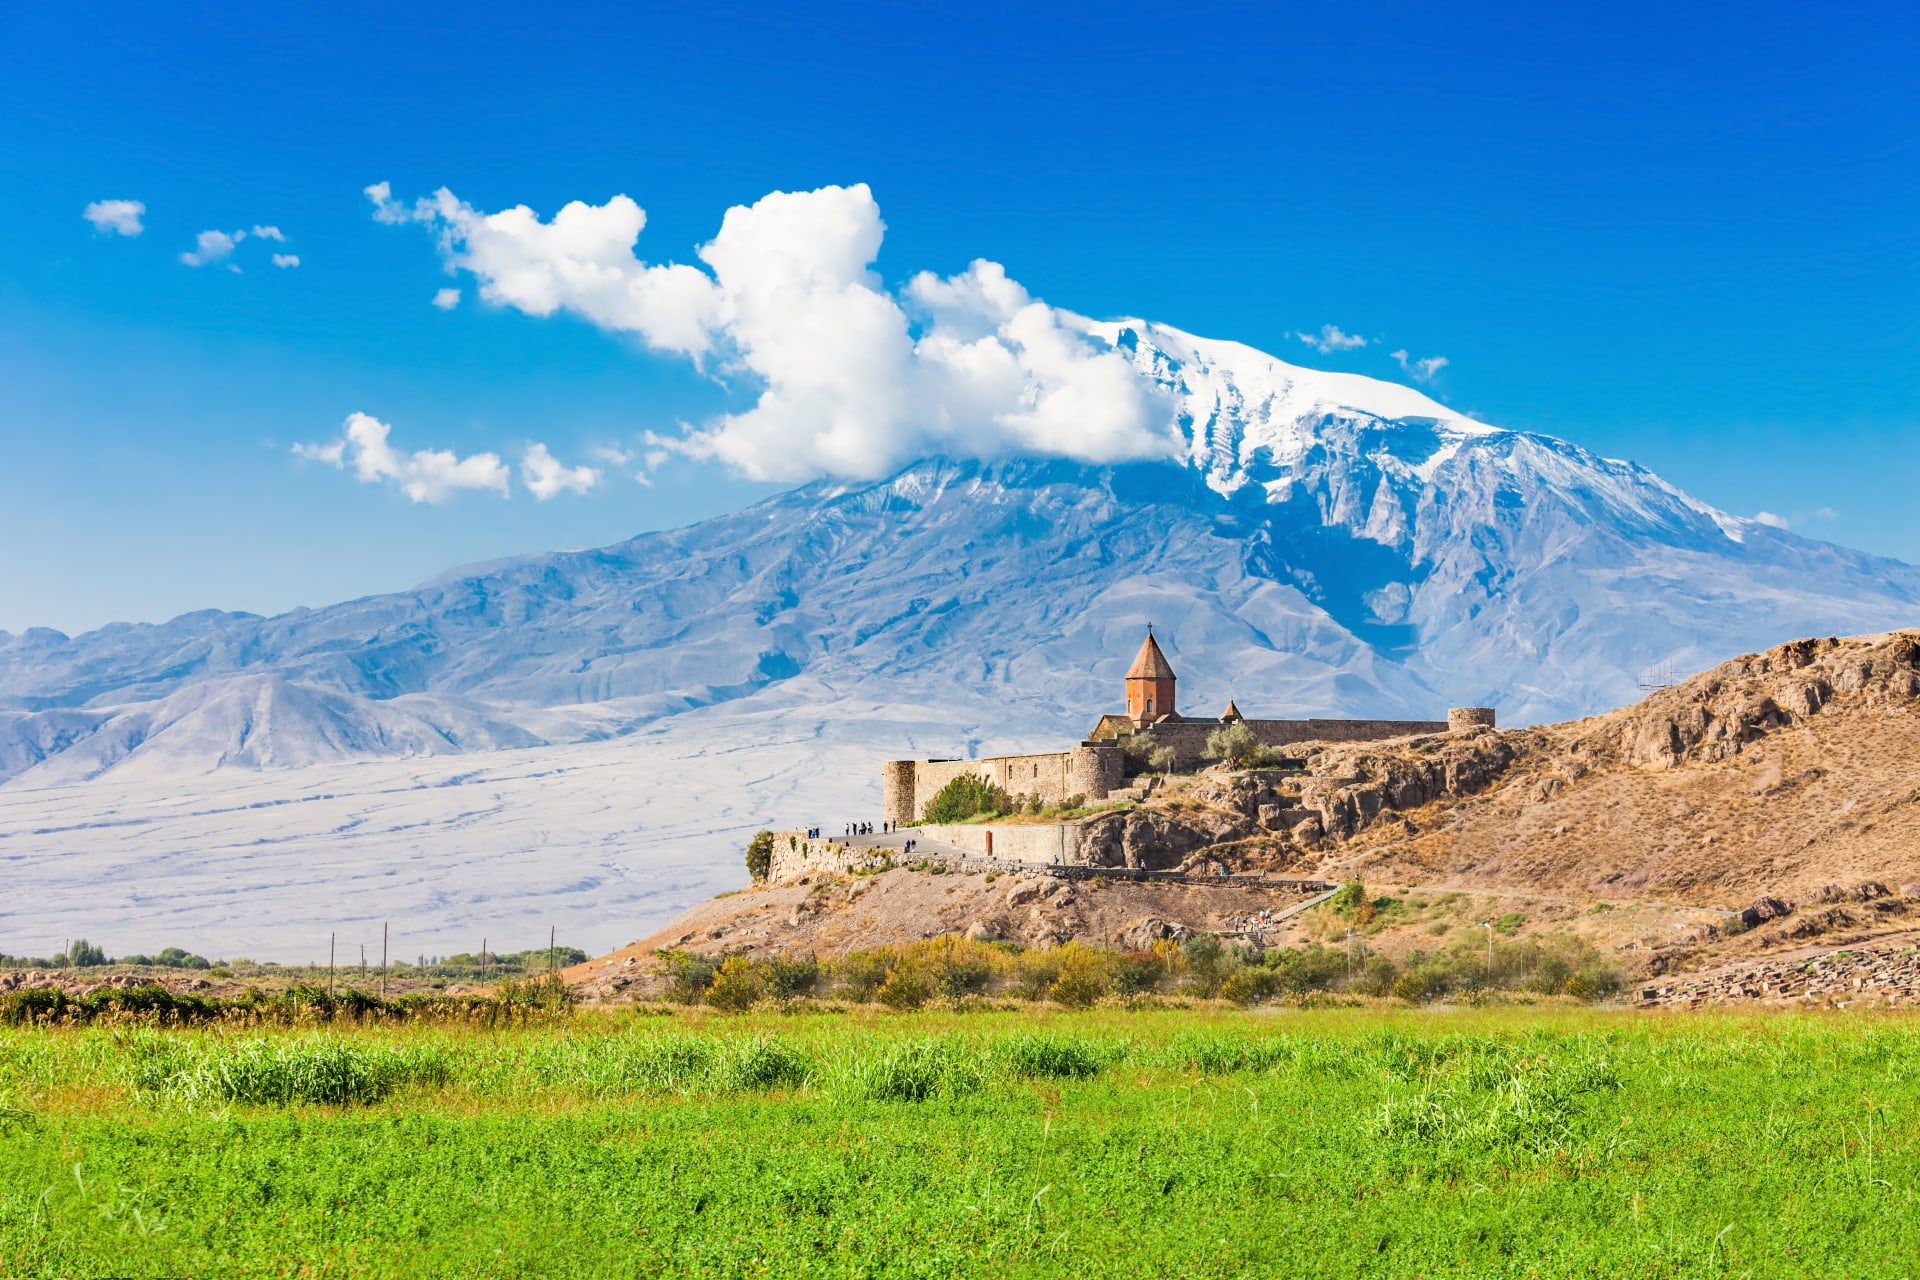 Yerevan - Khor Virap: A Monastery Complex with the Biblical Mountain in the Background